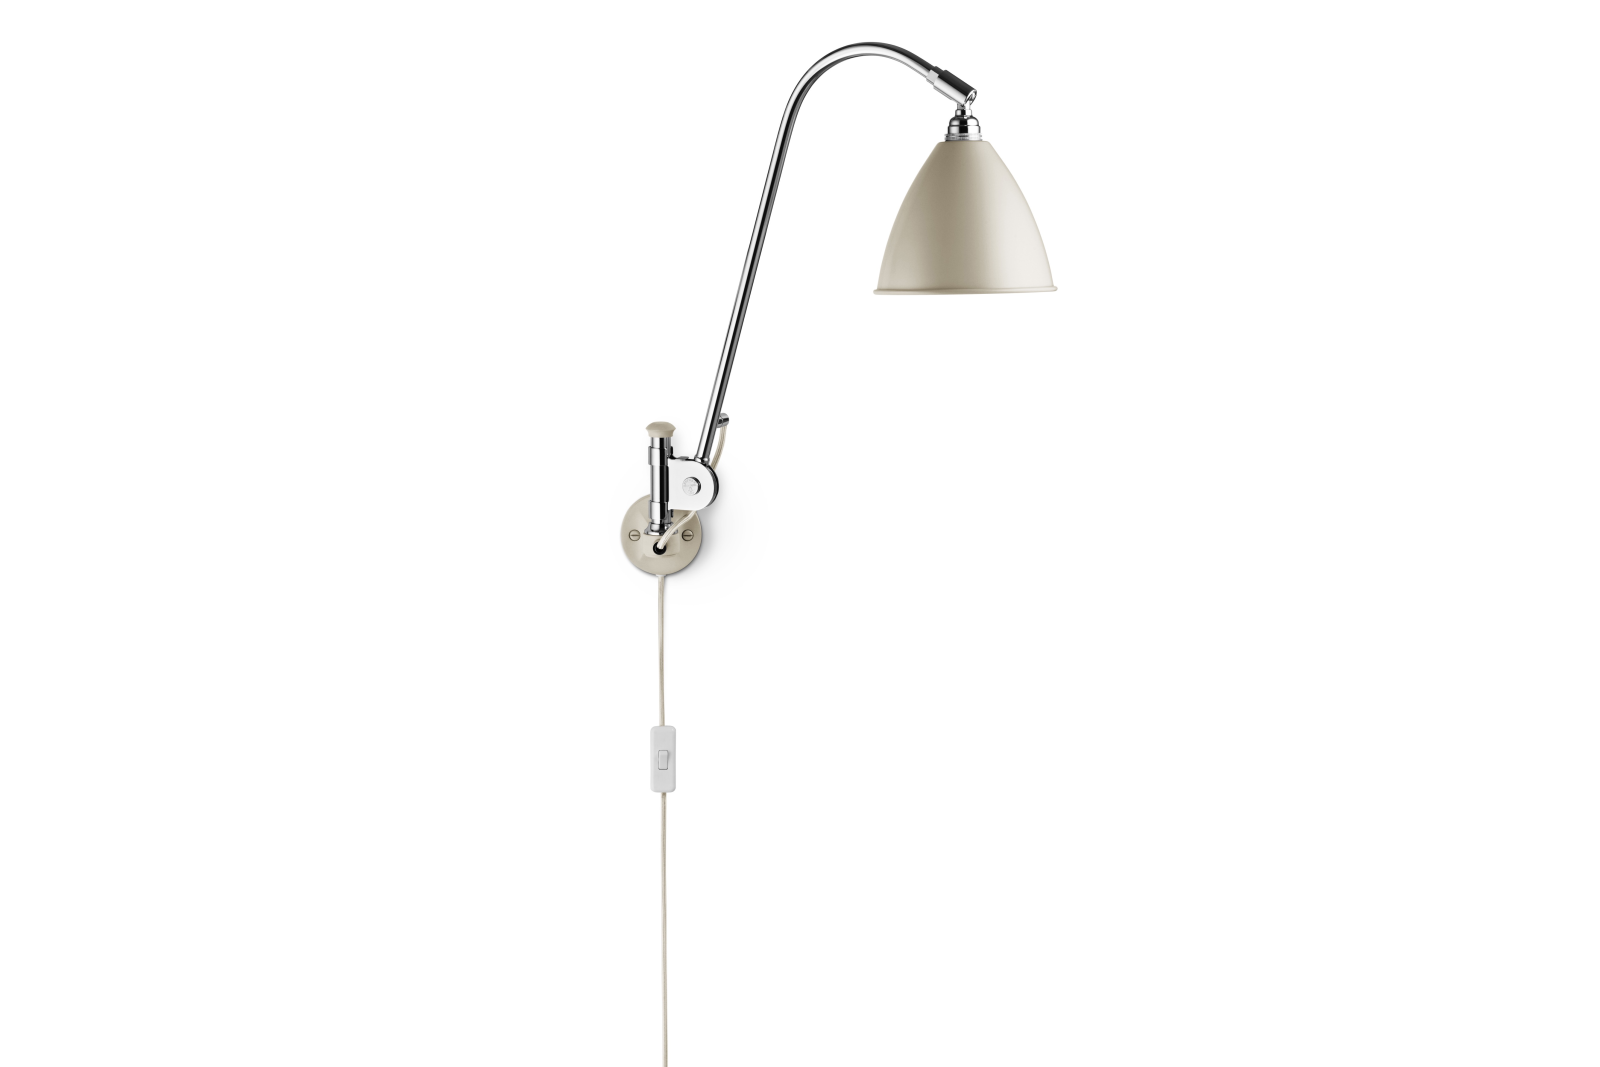 Bestlite BL6 Wired Wall Light Off-white, Chrome-plated Steel